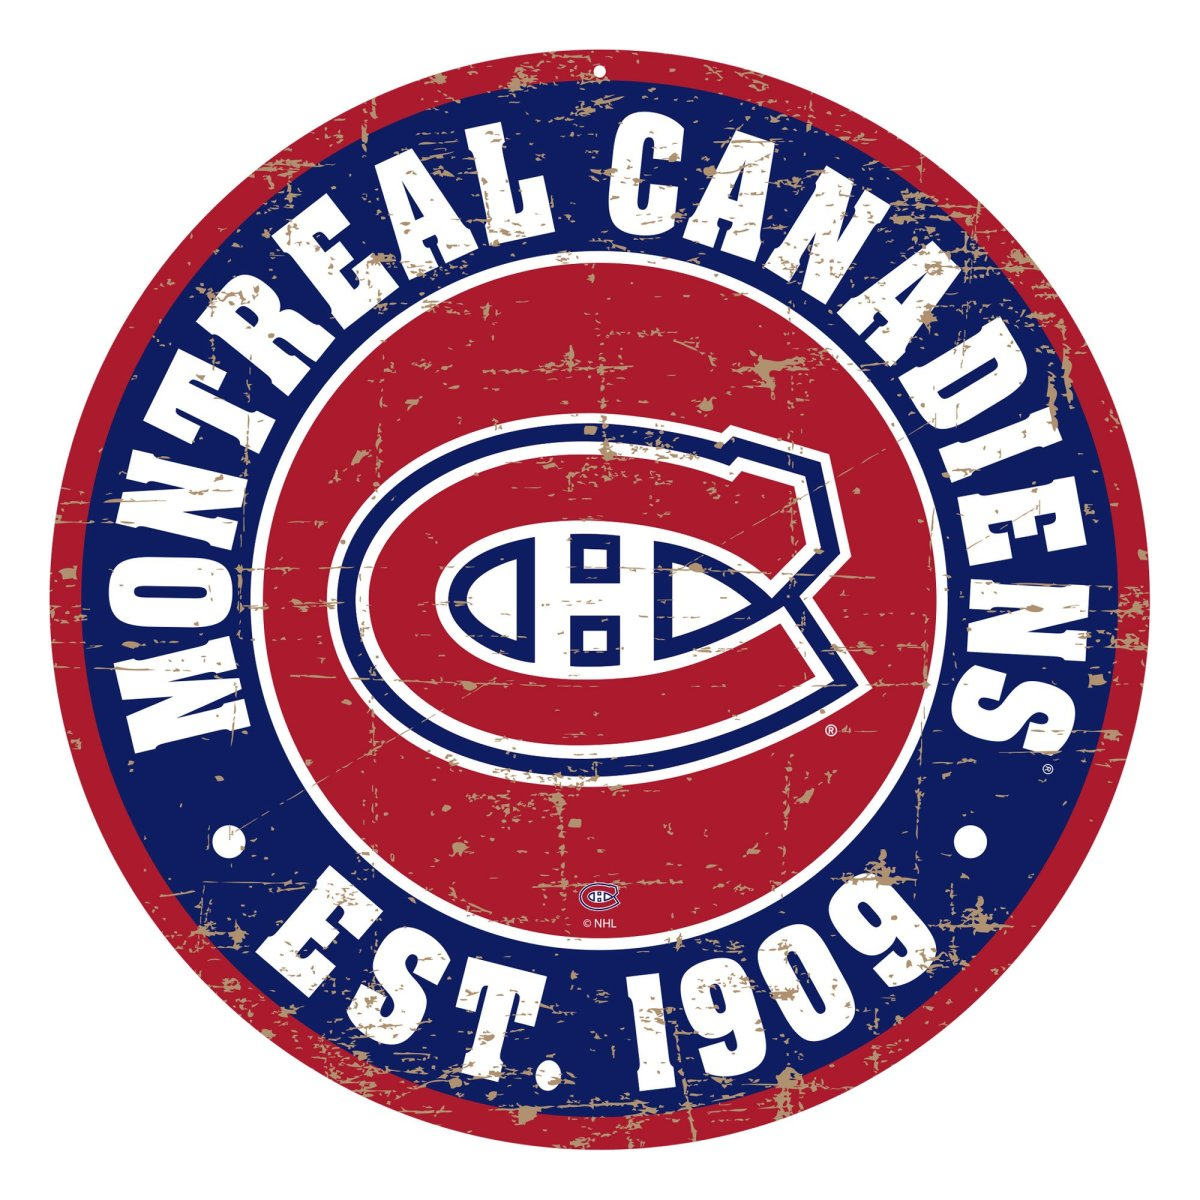 In 1930, the Montreal Canadiens were the Stanley Cup champions.